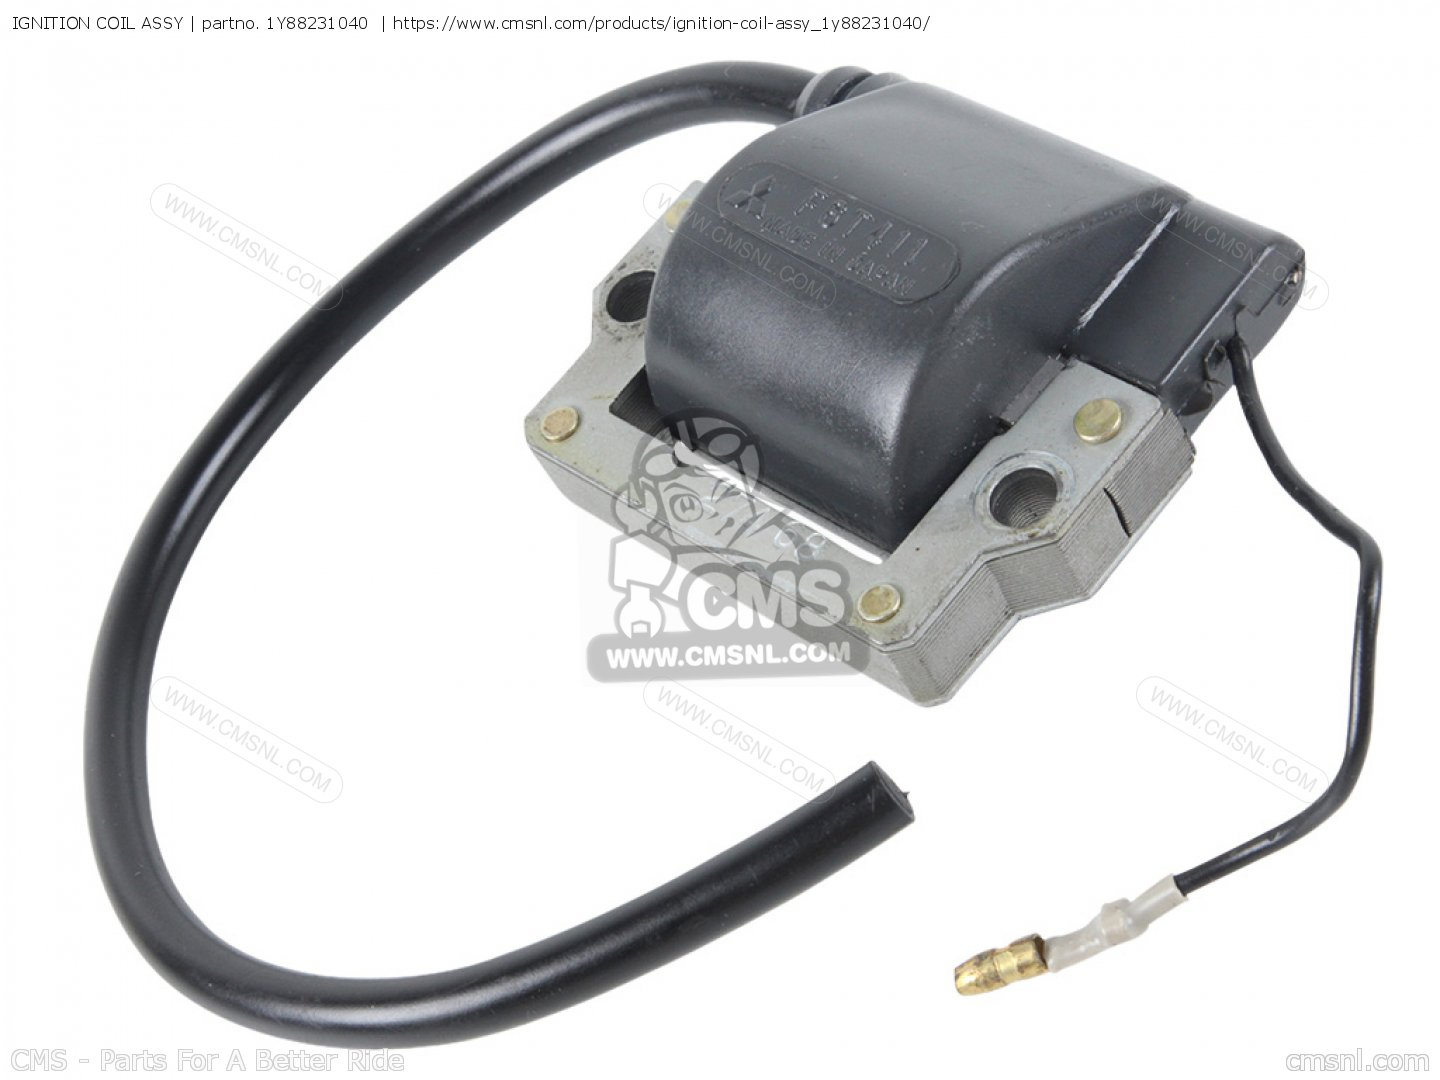 Enticer H Pdf as well Maxresdefault also Ignition Coil Assy Big Y Ce also Yasn as well Ss A. on wire diagram yamaha enticer